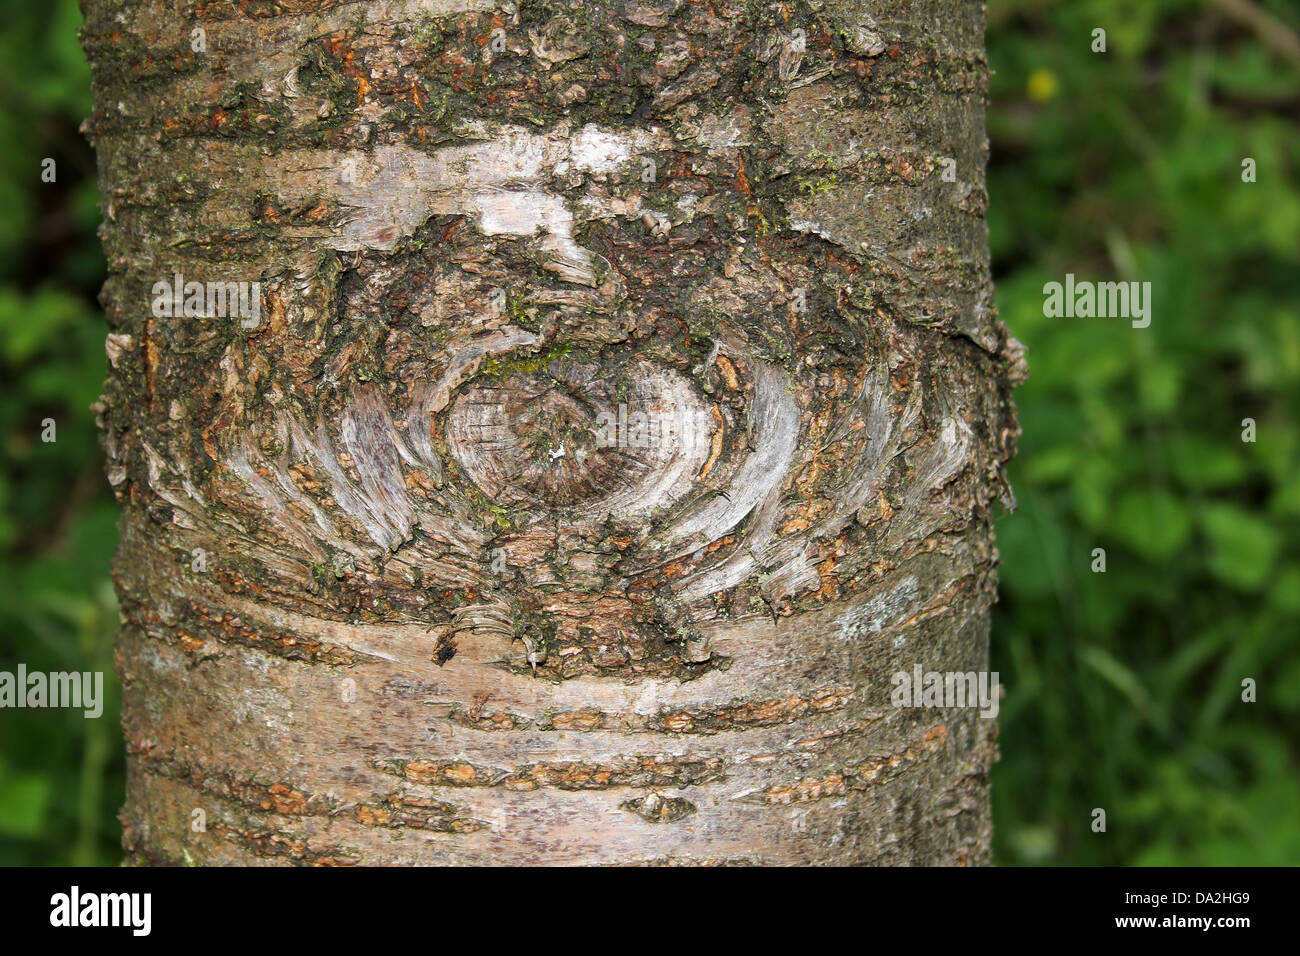 Tree Branch Knot On Tree Trunk Resembling Eye - Stock Image